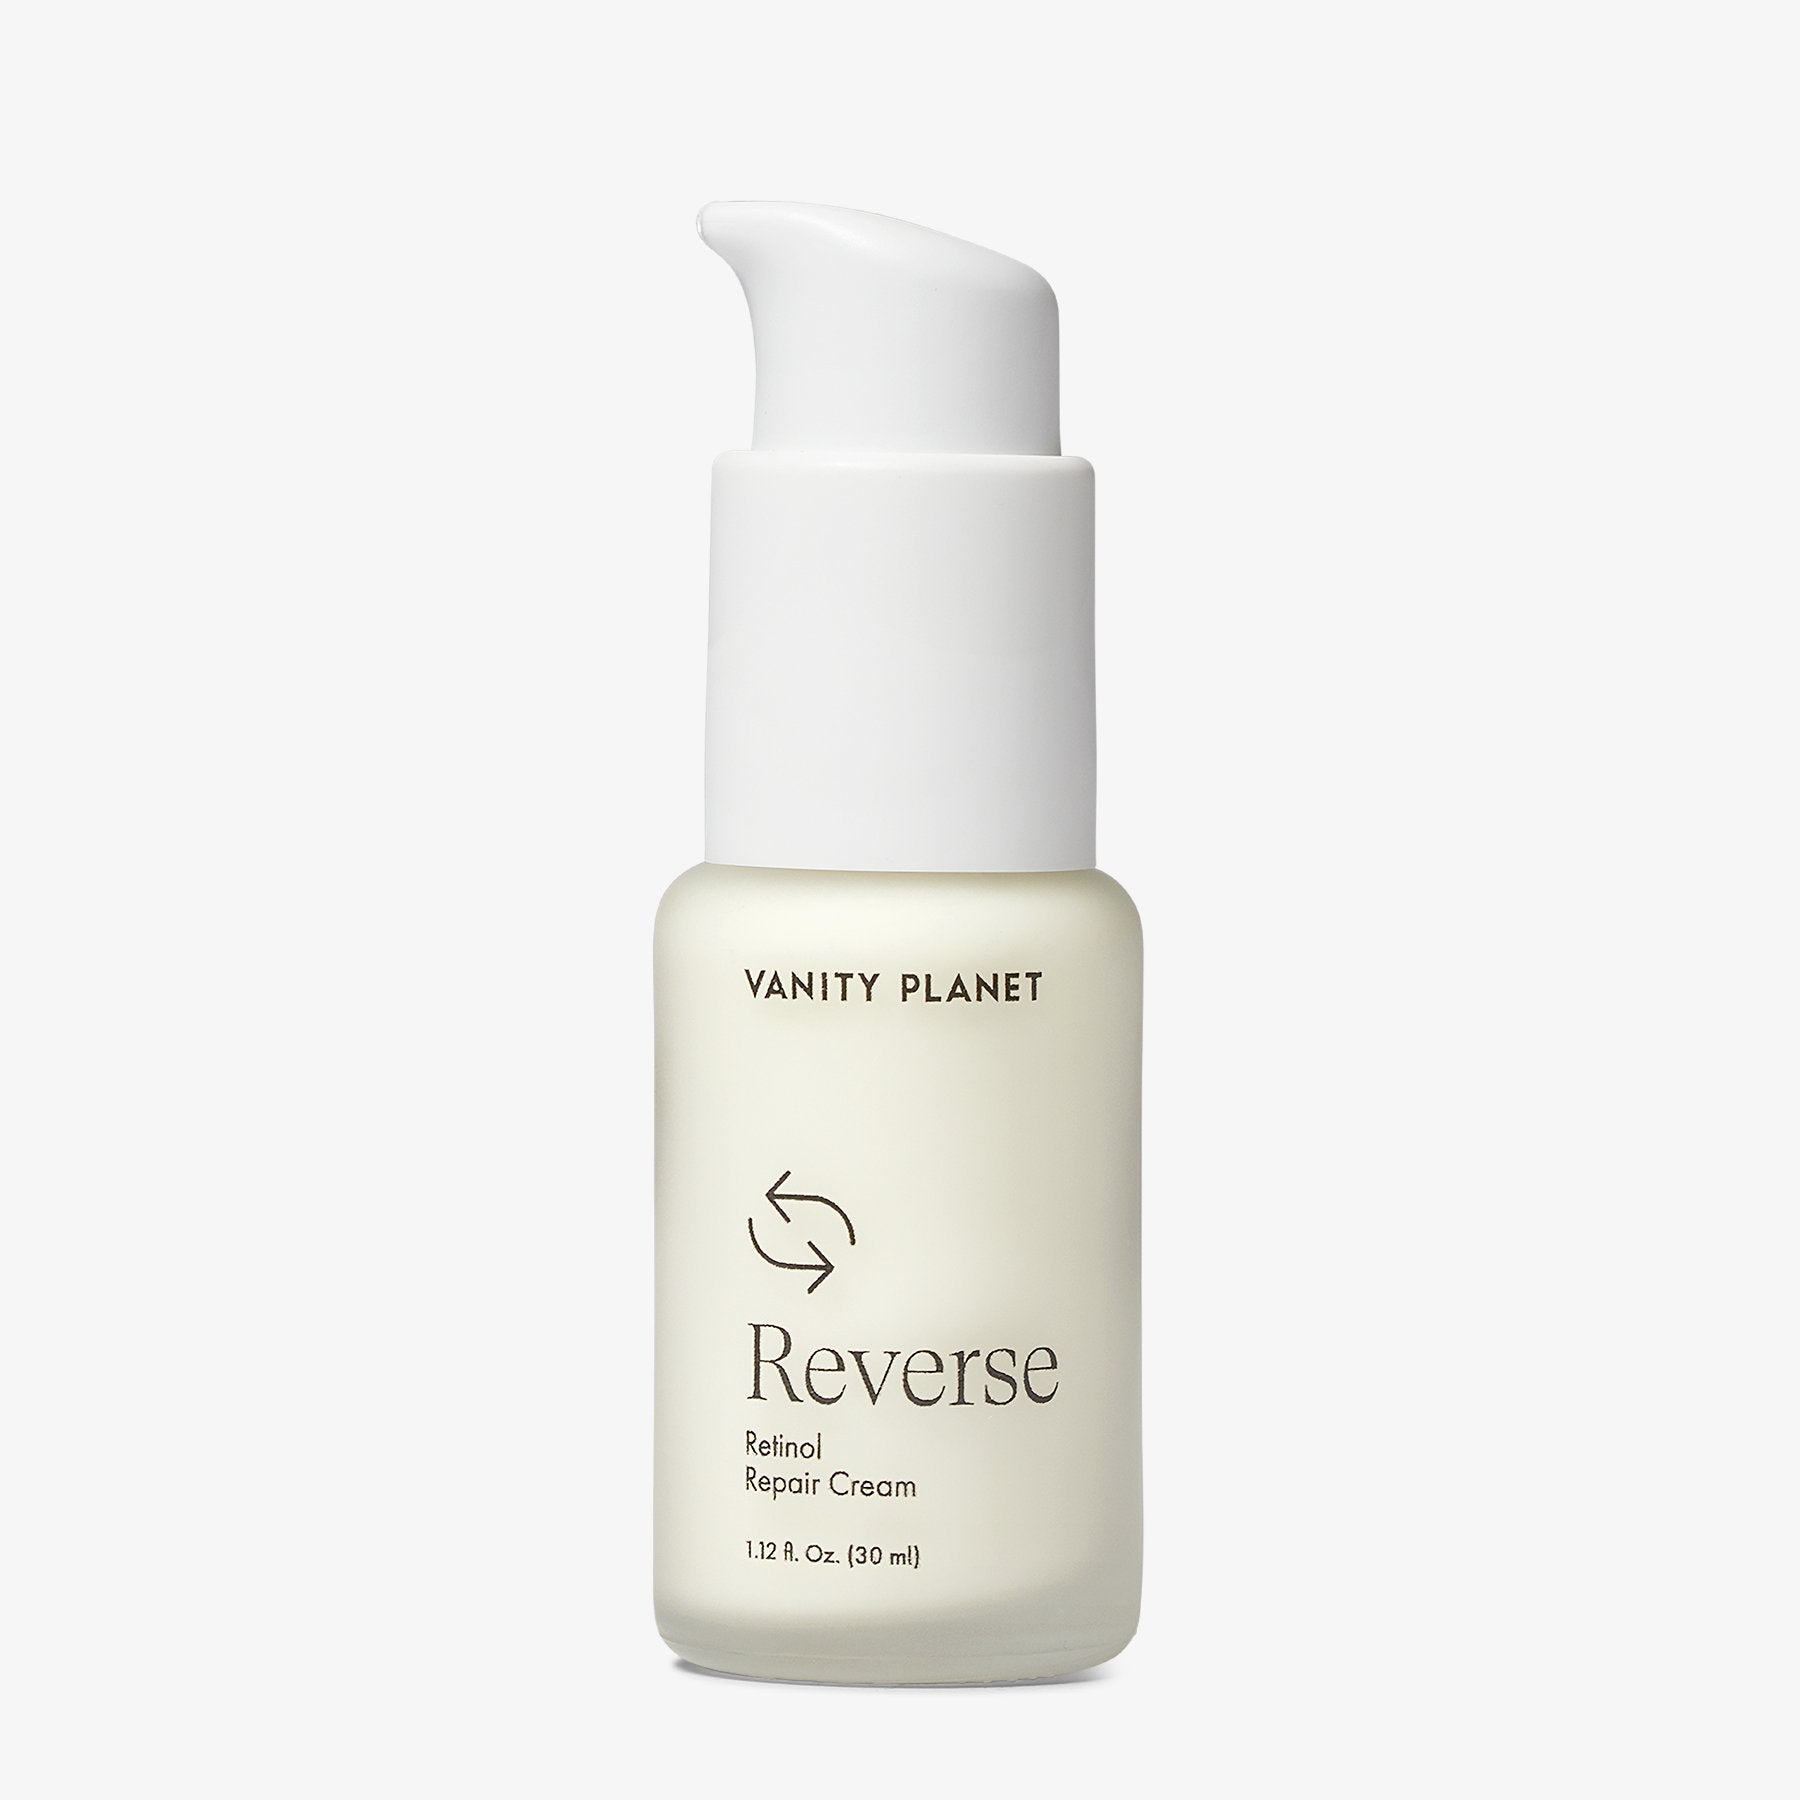 Reverse | Retinol Repair Cream.